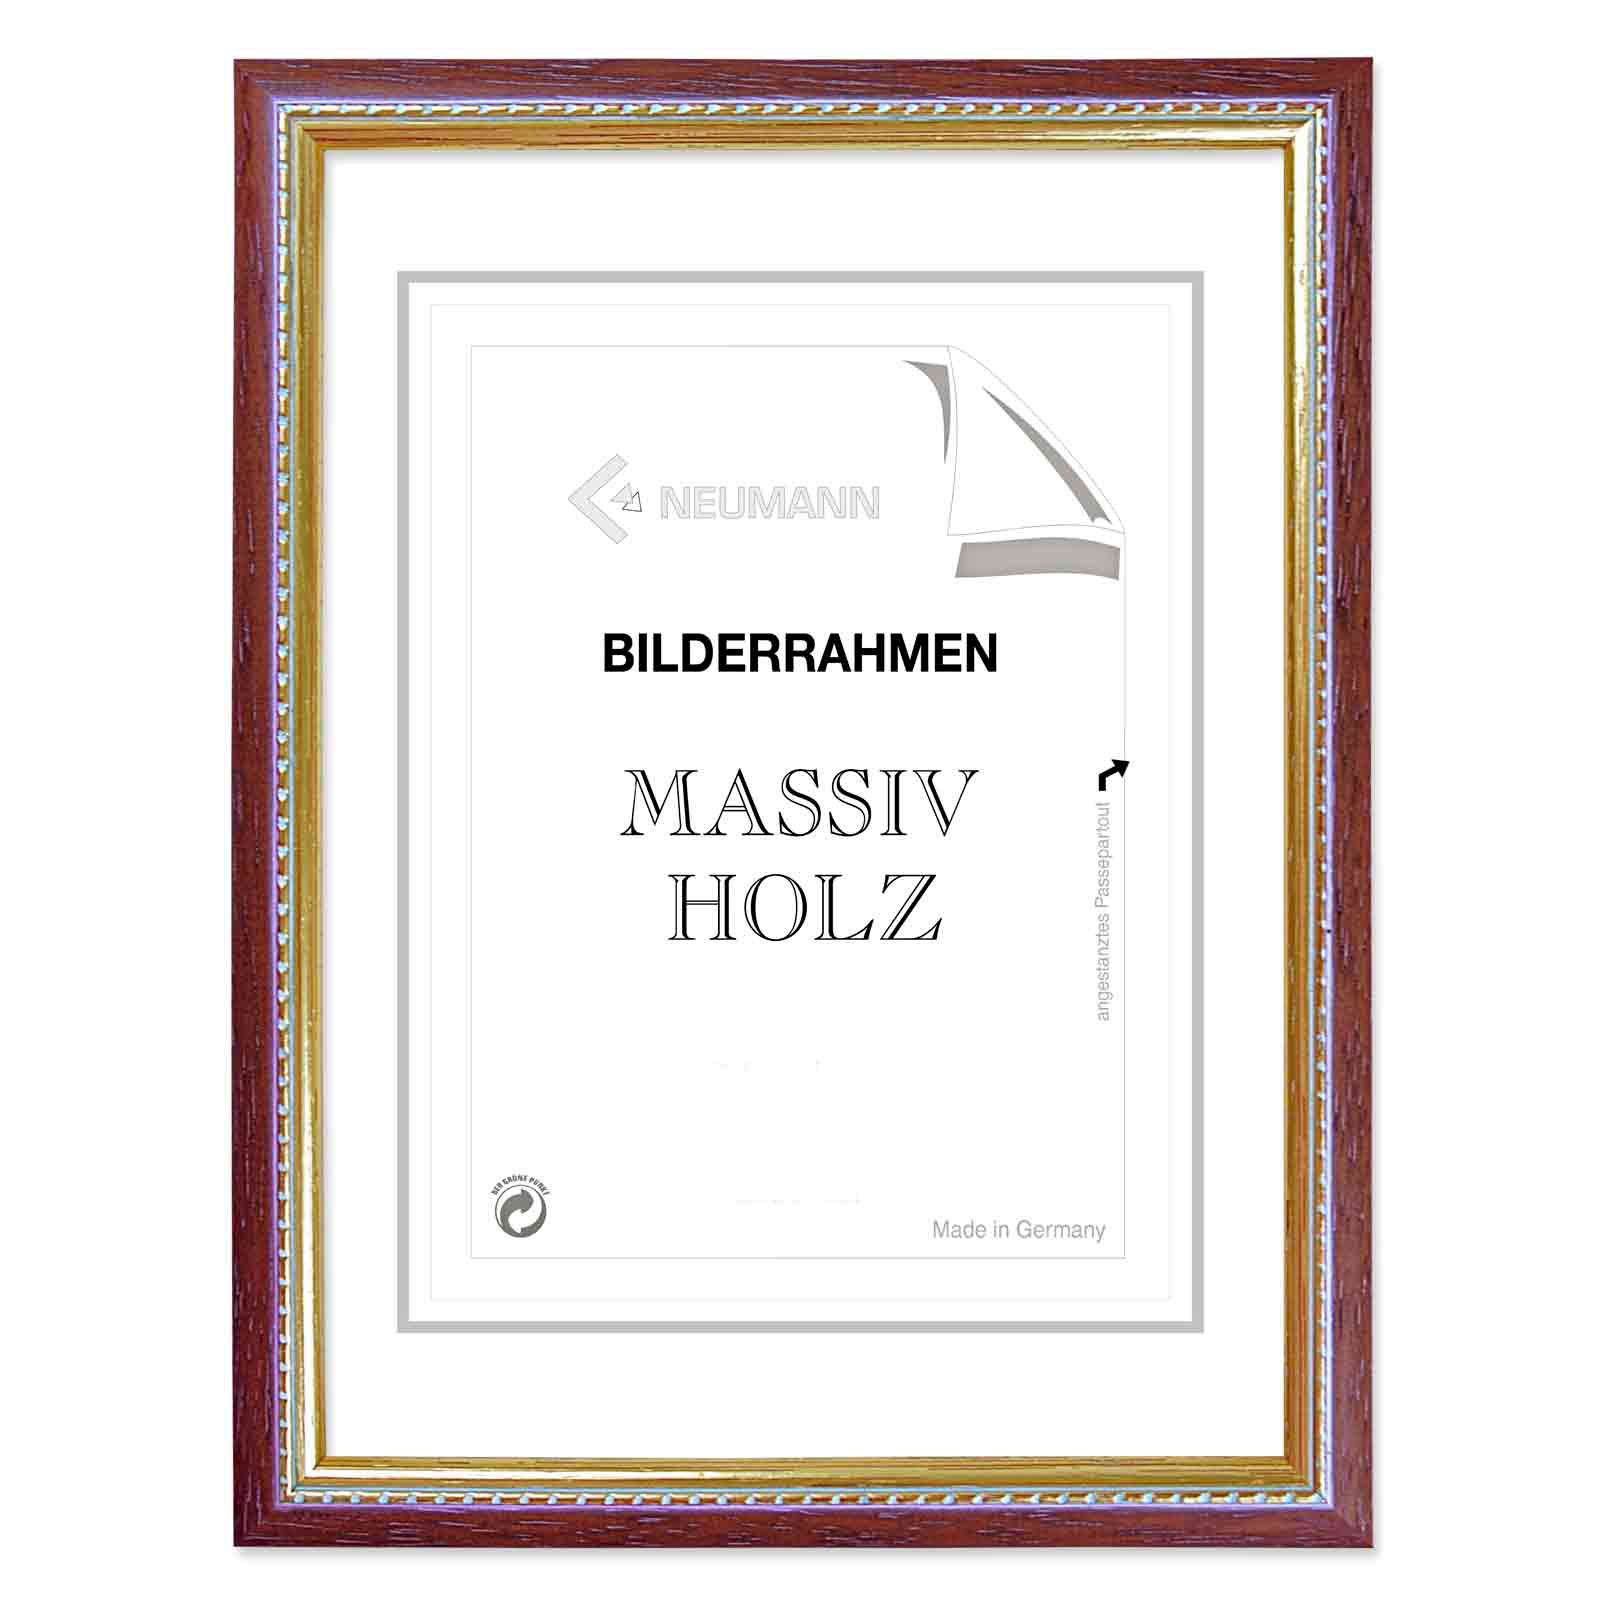 Wooden Frame Mailand Changing Frame in 5 Colors Dark Red 50x60 Cm | eBay